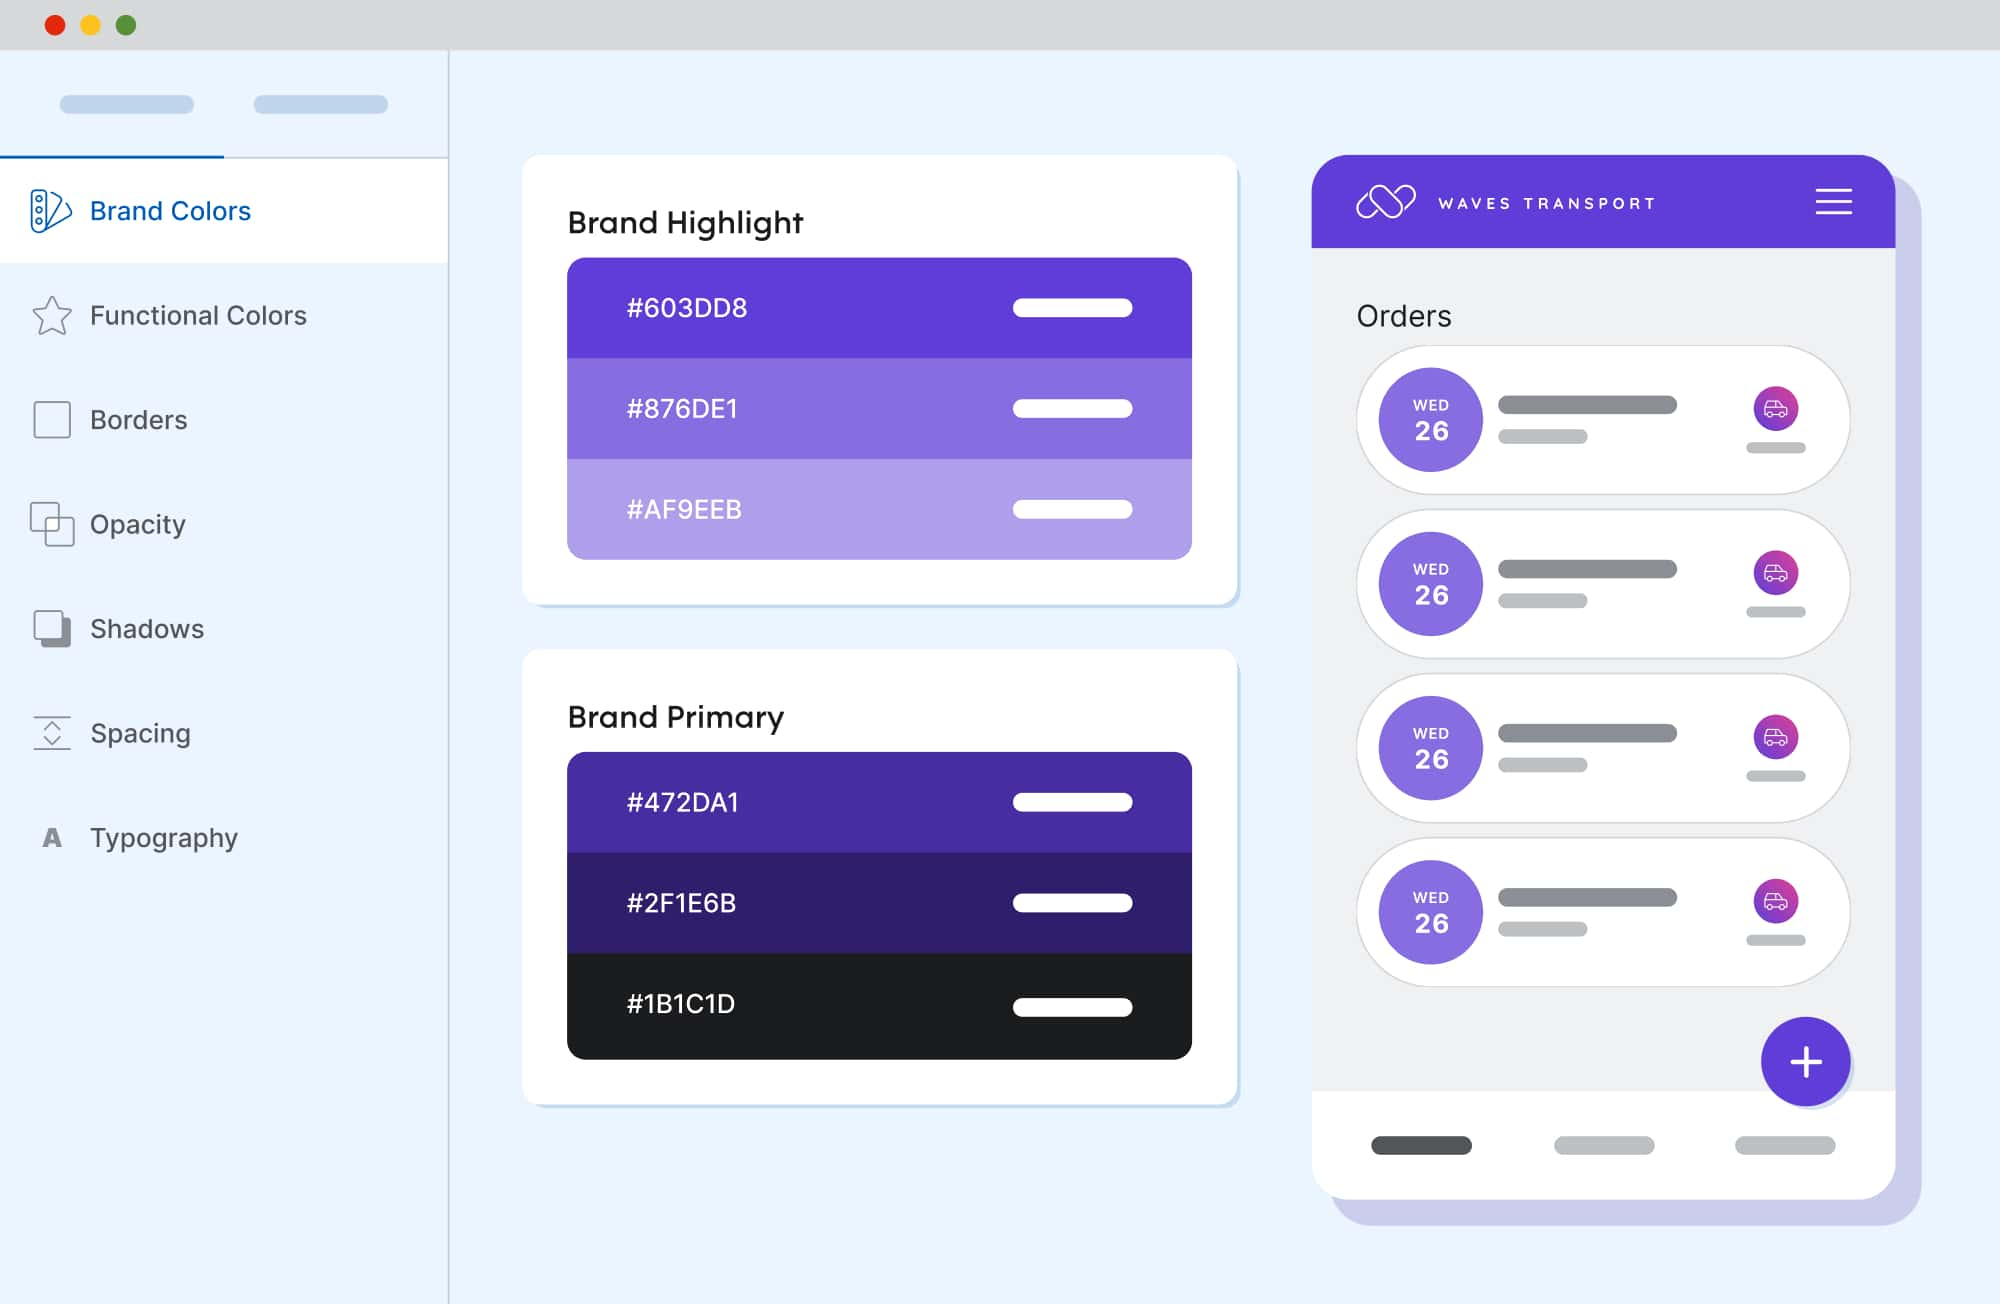 Mockup of a browser showing the Design System Studio and how one change to the primary color creates a whole new color system.